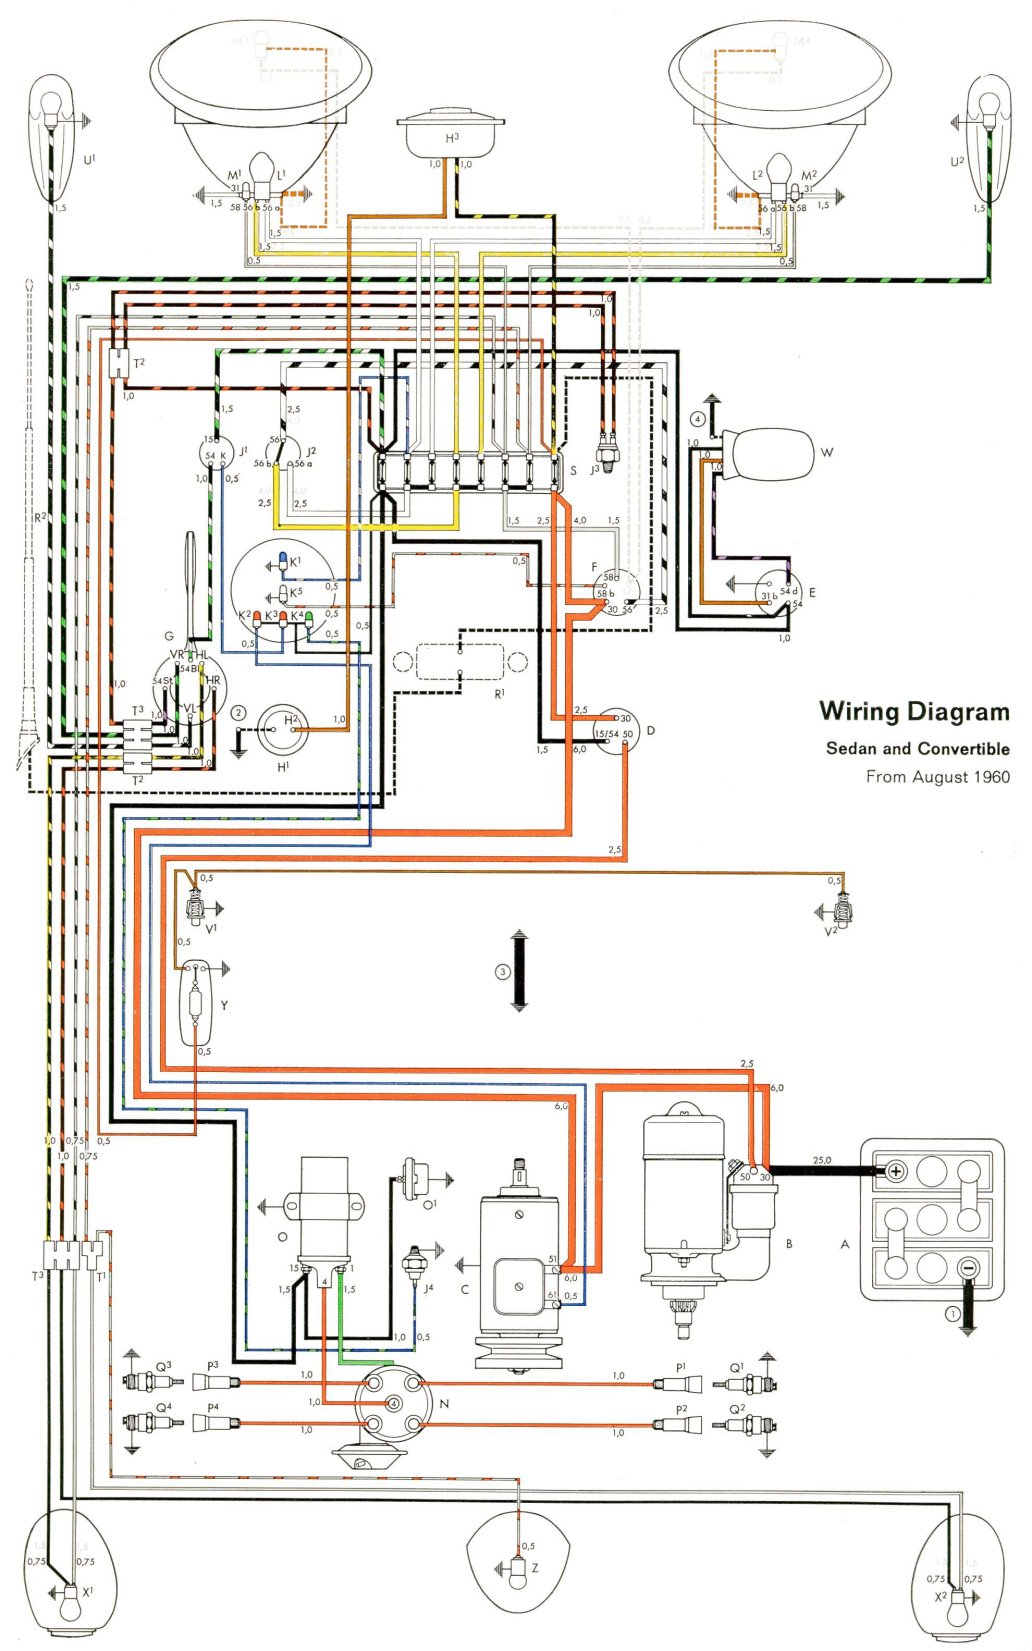 bug_61 1961 beetle wiring diagram thegoldenbug com 1969 vw bug wiring harness at reclaimingppi.co